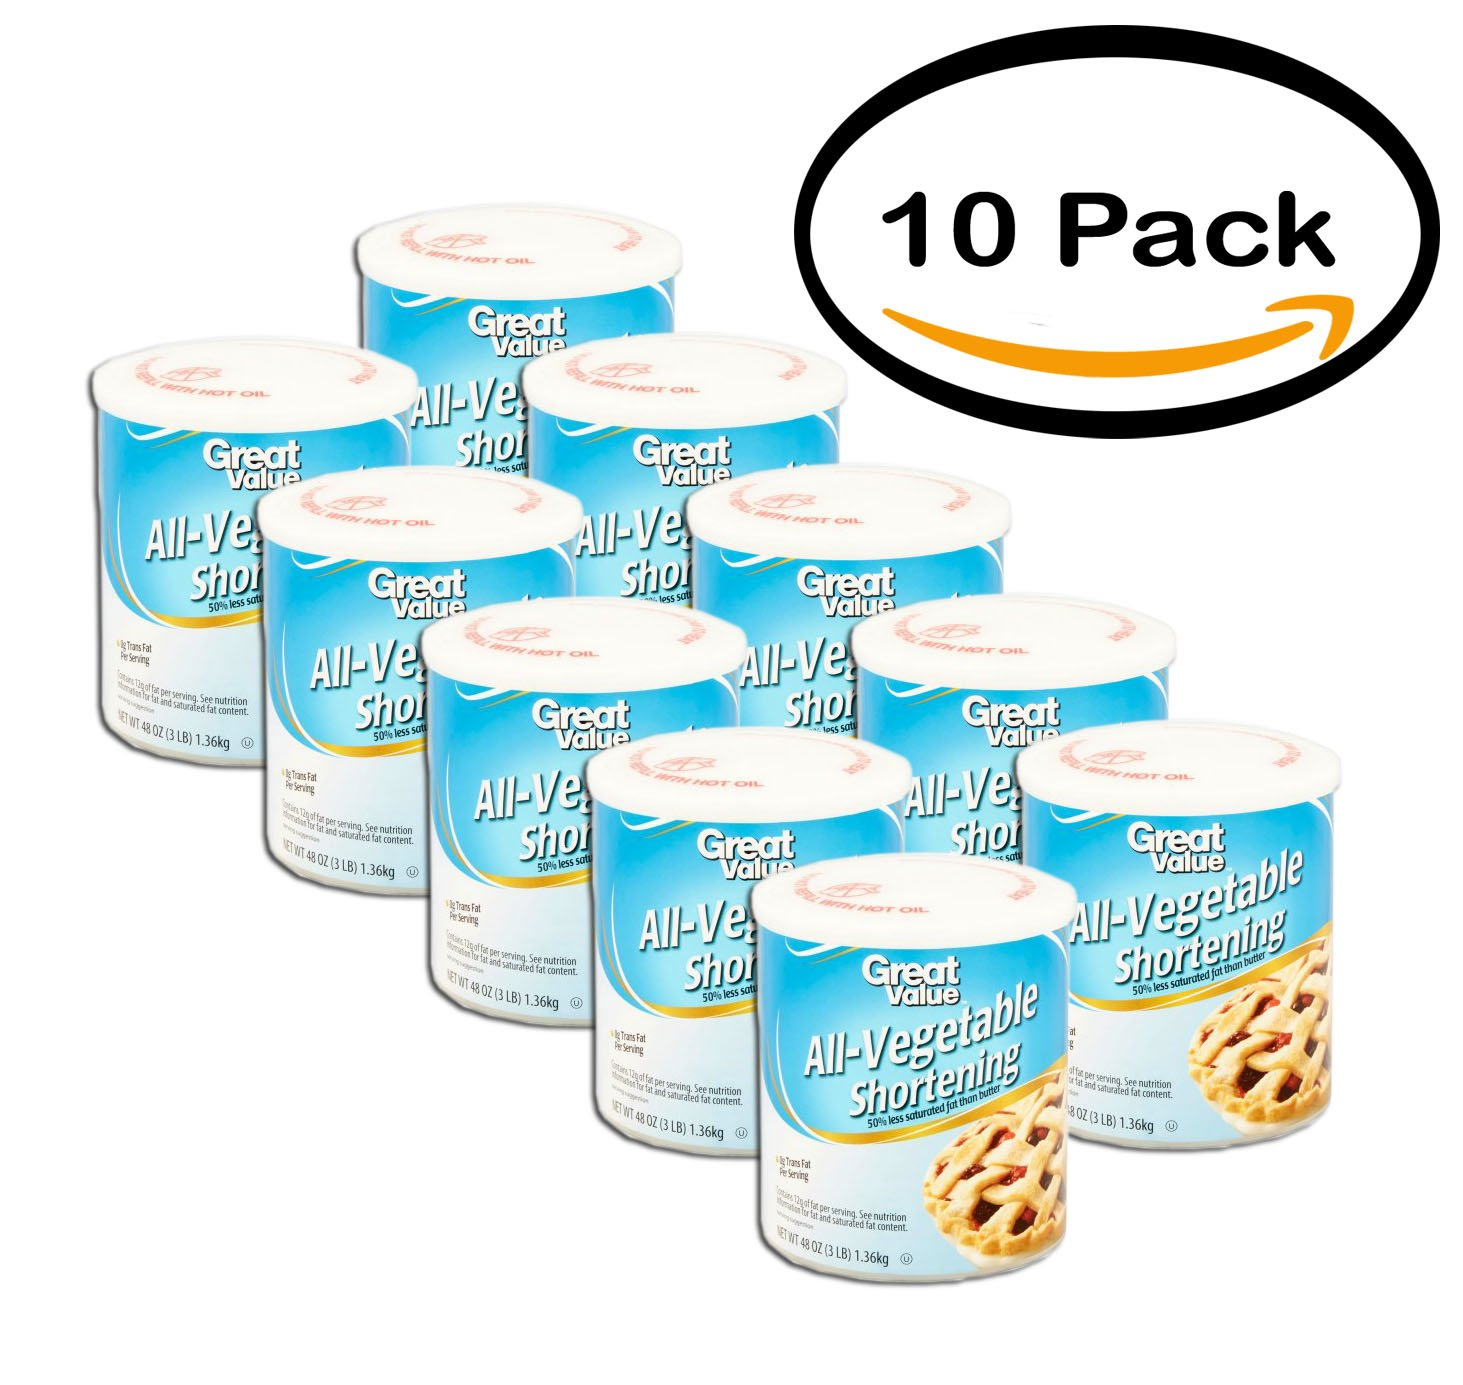 PACK OF 10 - Great Value: All-Vegetable Shortening, 48 Oz